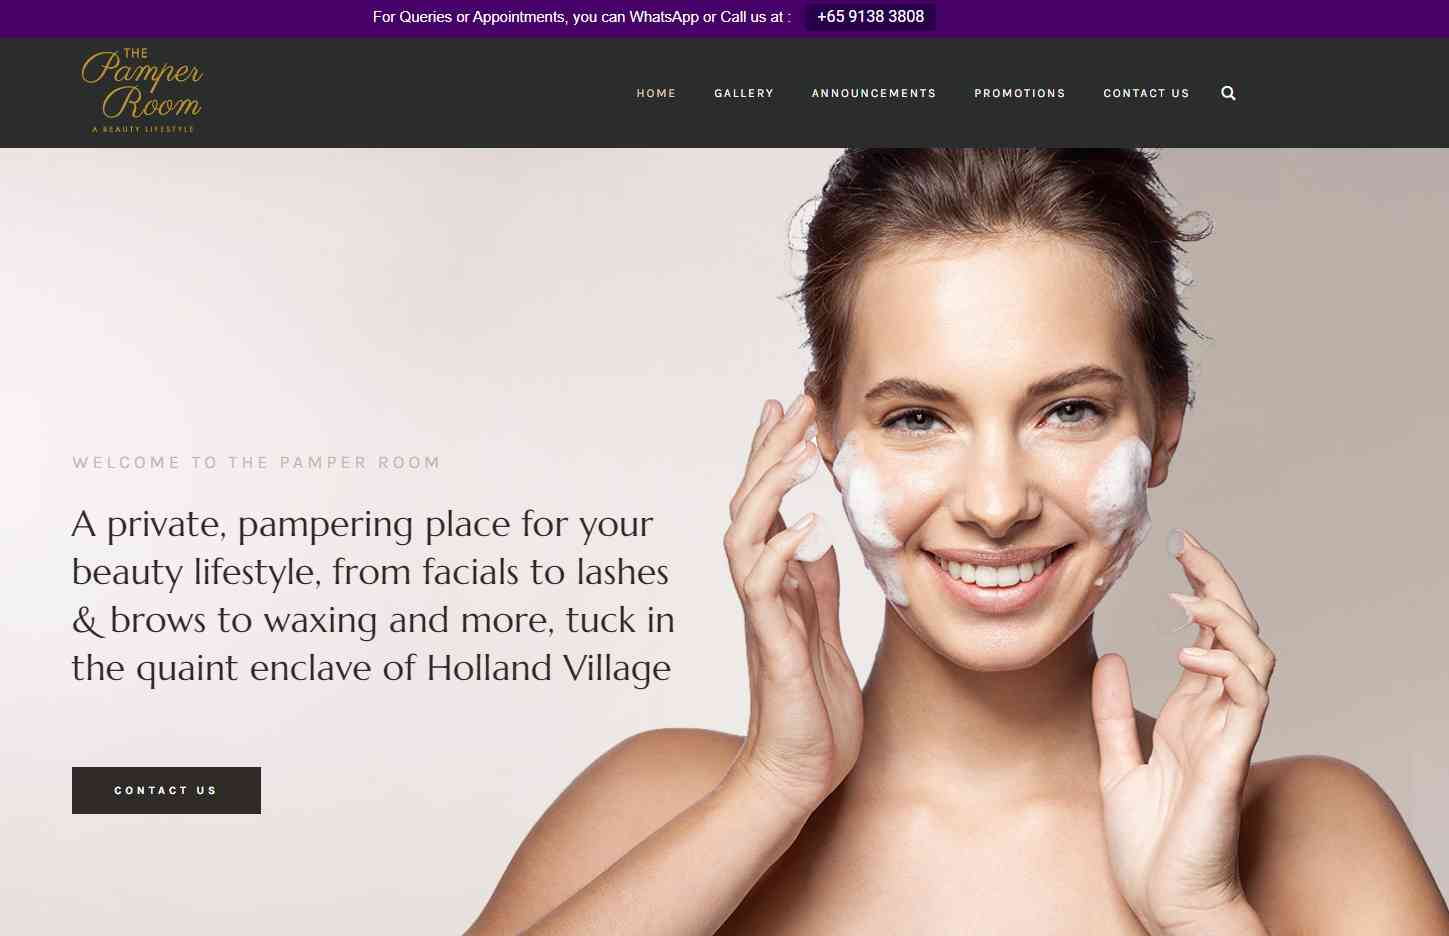 the pamper room Top Facial Salons in Singapore